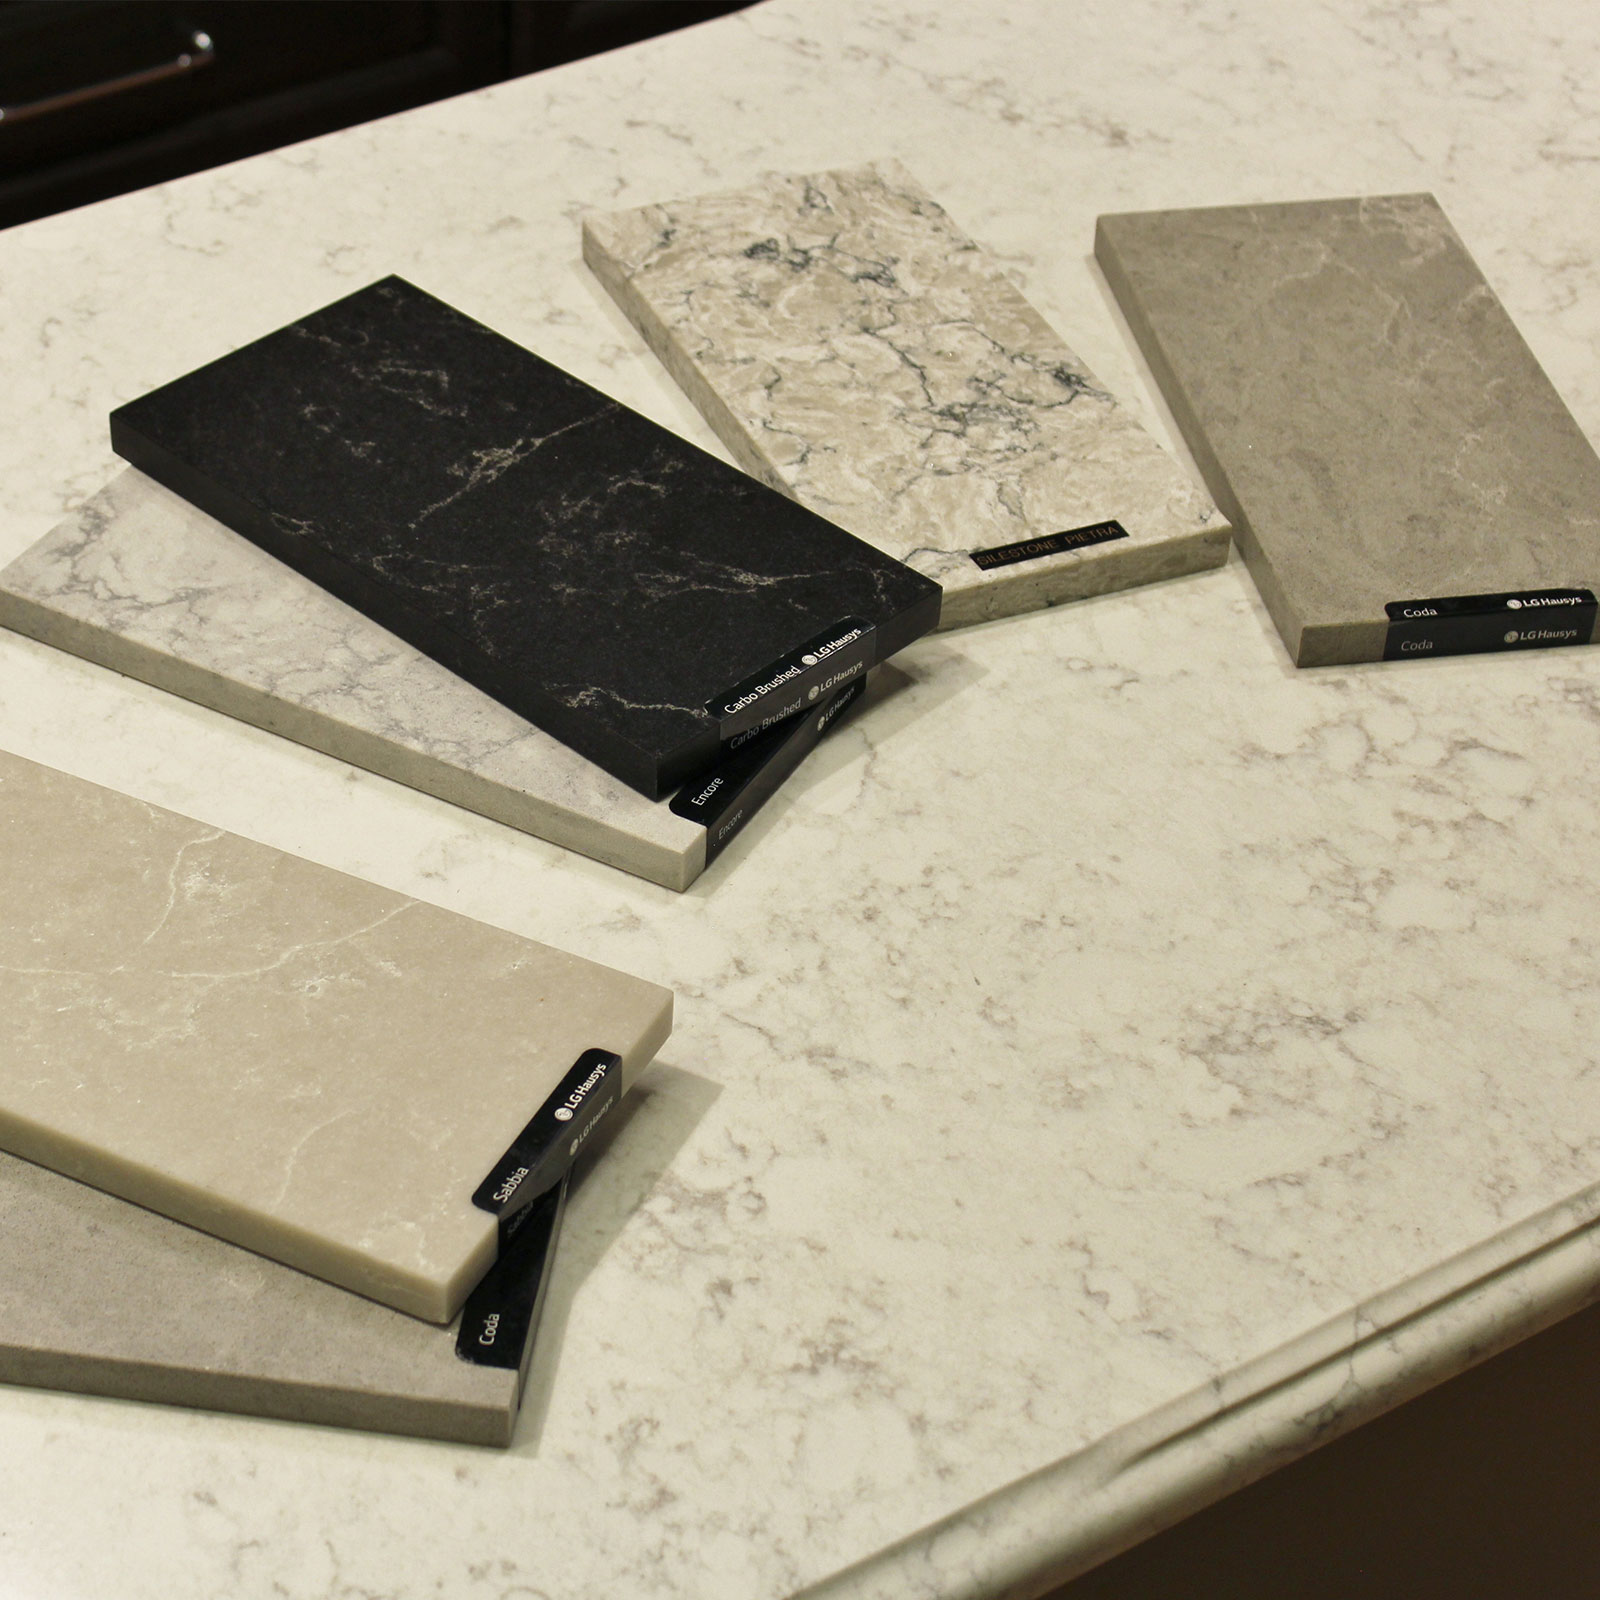 Jackson Kitchen Designs - We stock Quartz, Granite, Marble, Wood, Corian & Laminate